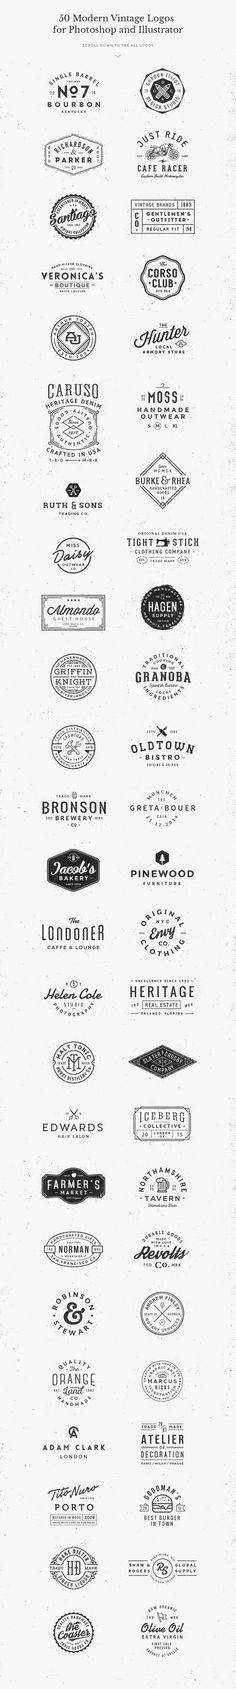 50 Logo Mock-ups + 50 Logo Templates by GraphicBurger on Creative Market: